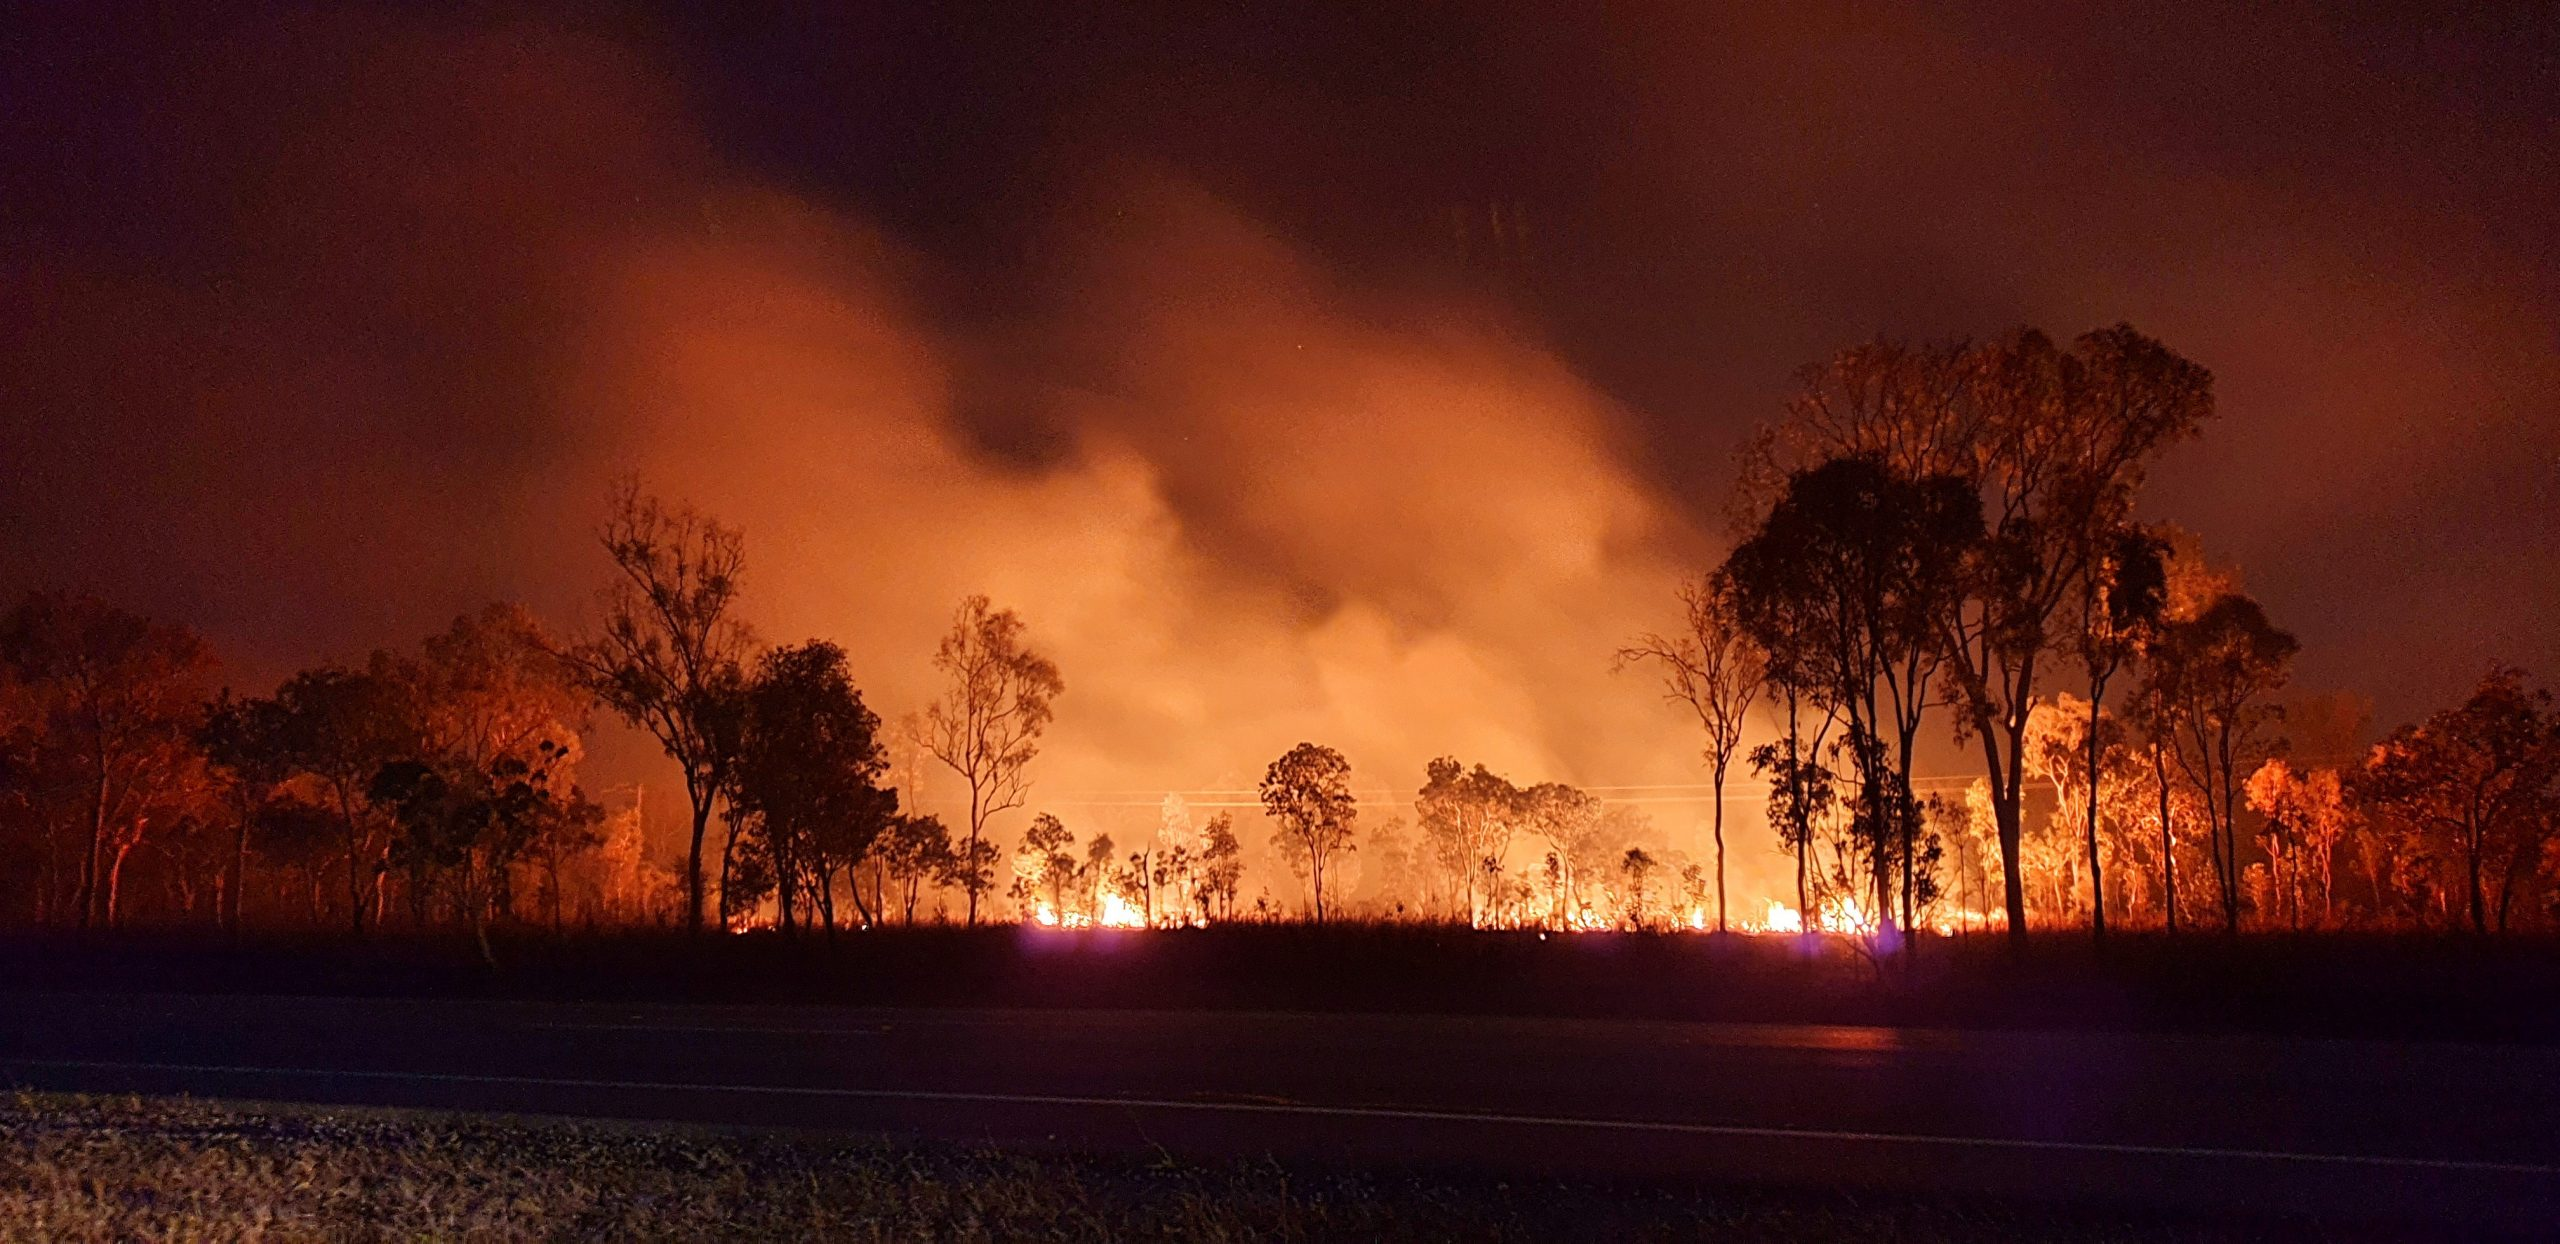 Make sure you're bushfire ready when camping this summer